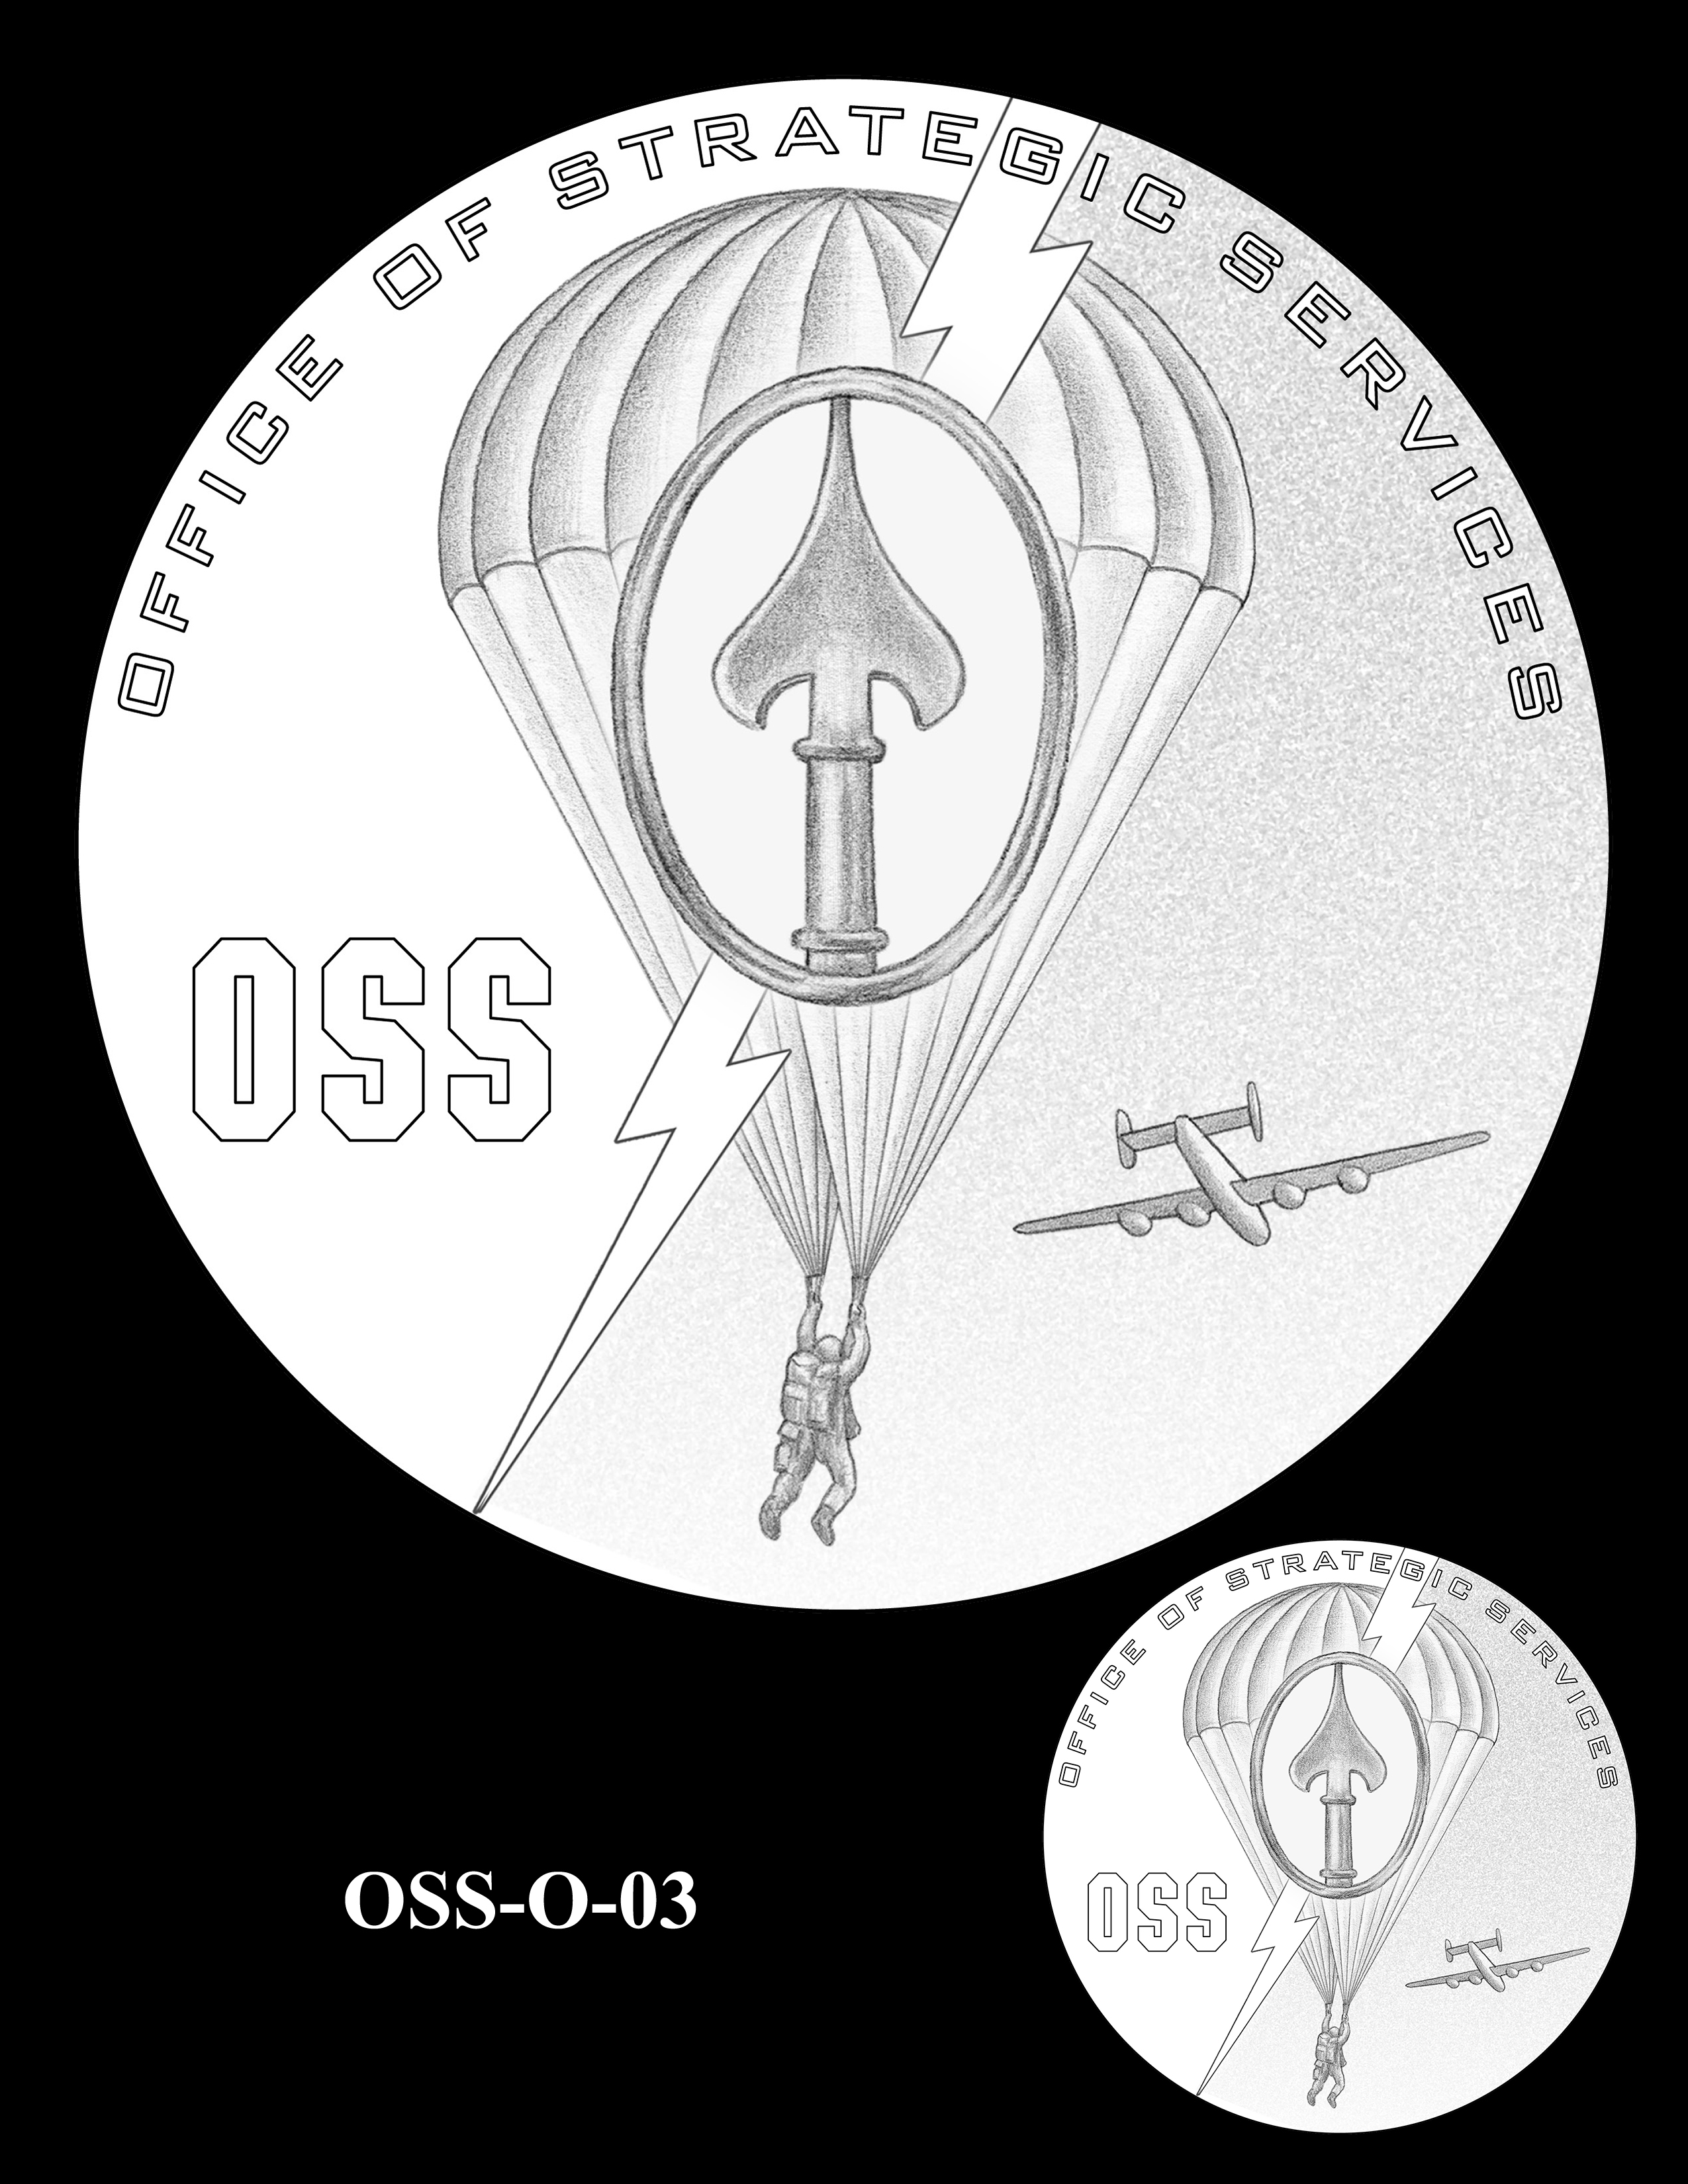 OSS-O-03 -- Office of Strategic Services Congressional Gold Medal